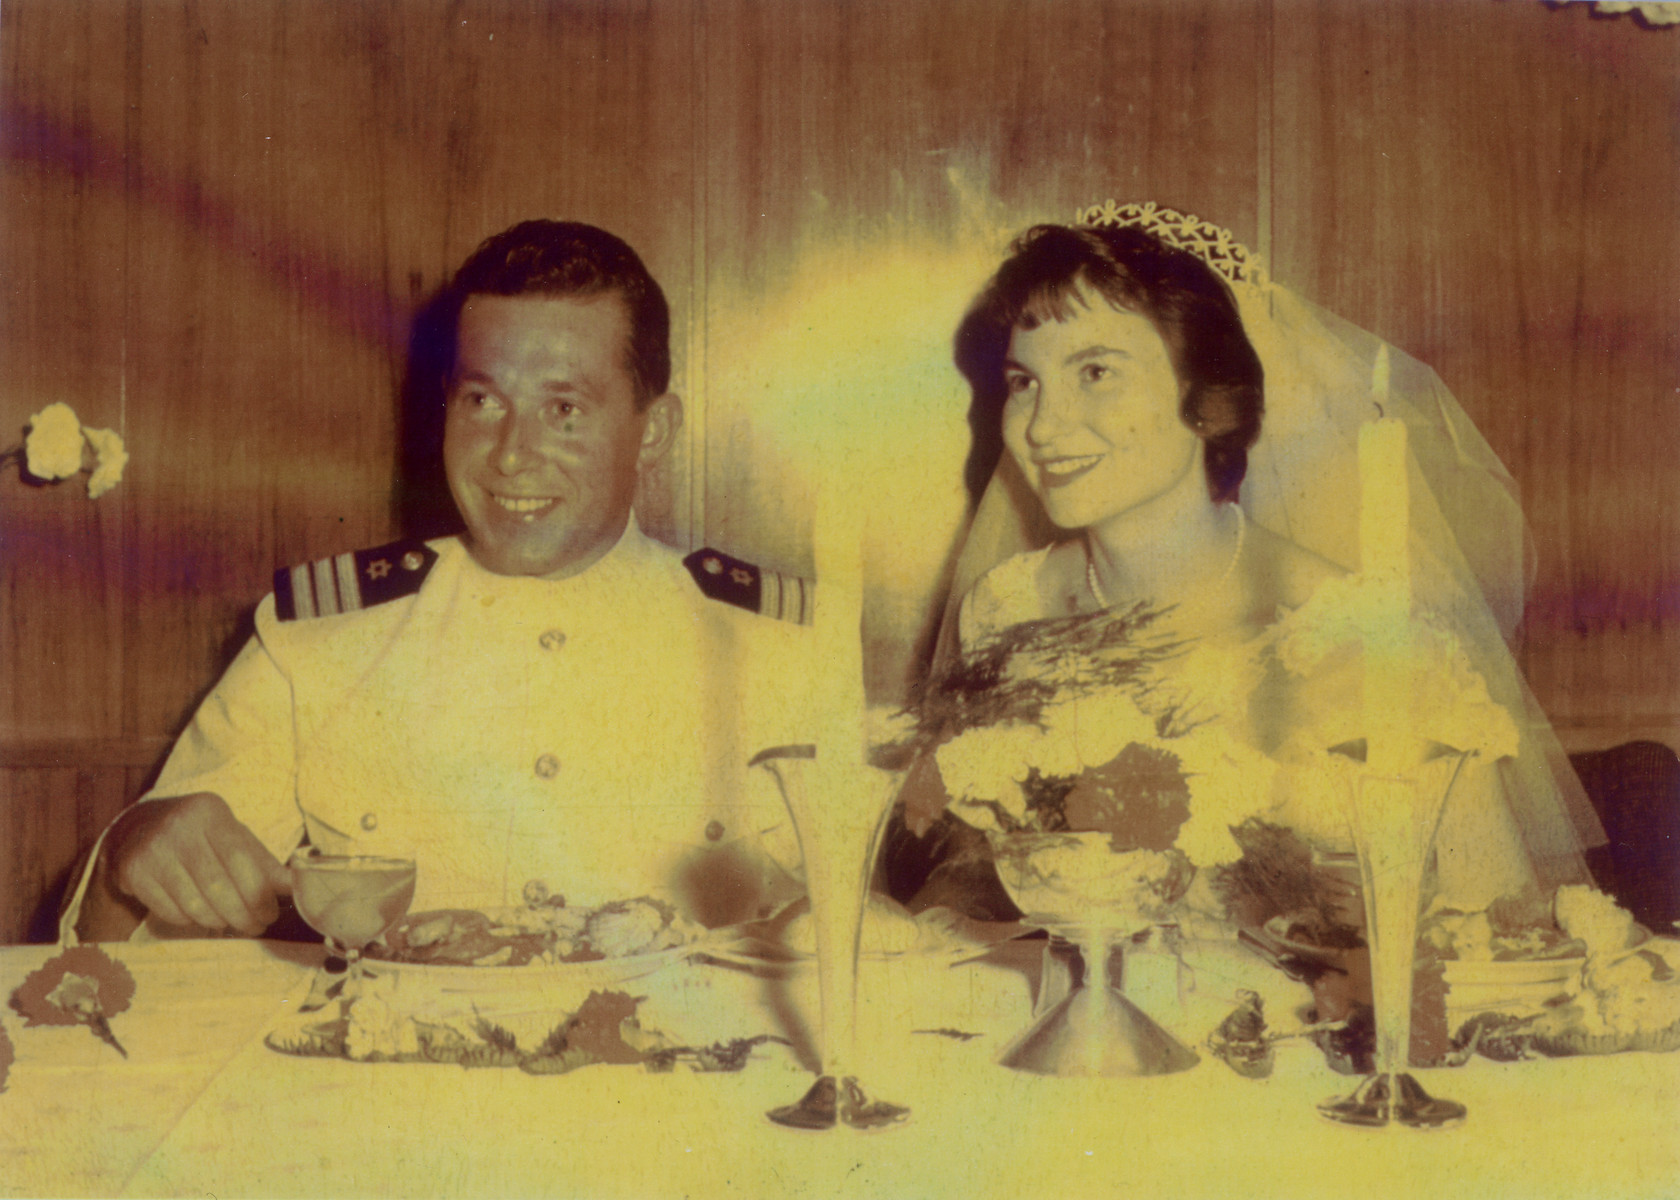 Wedding portrait of Freddie Traum and Josiane Aizenberg on board the Zion, a ZIM line vessel.